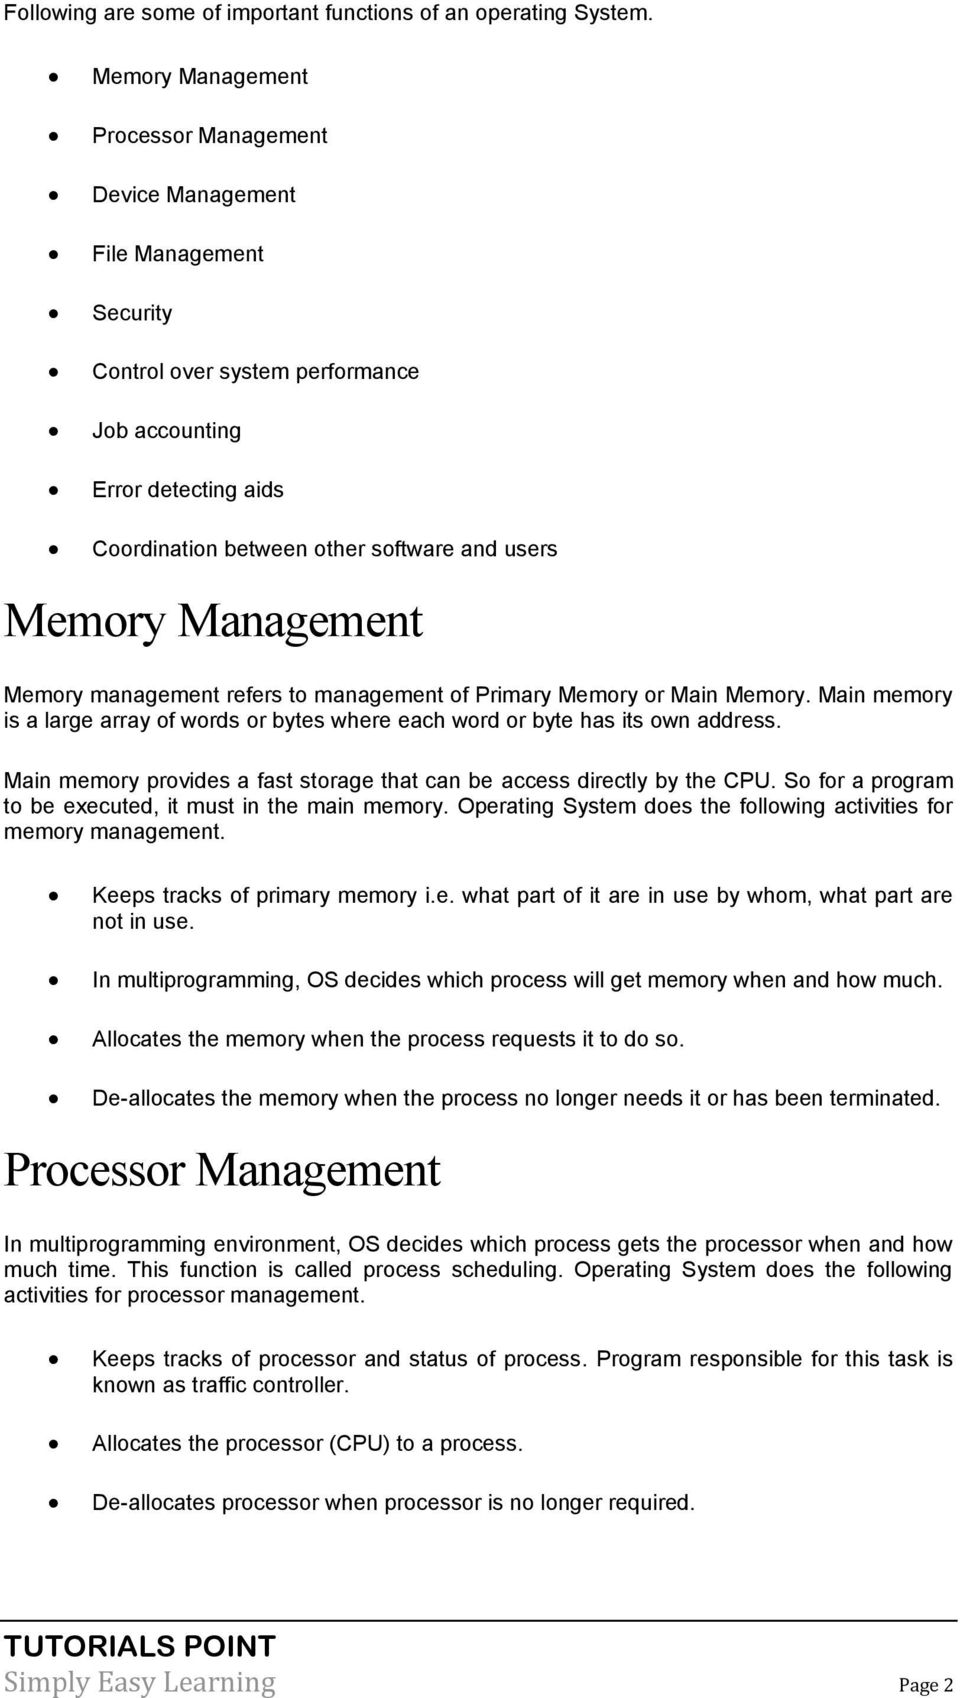 Memory Management Memory management refers to management of Primary Memory or Main Memory. Main memory is a large array of words or bytes where each word or byte has its own address.